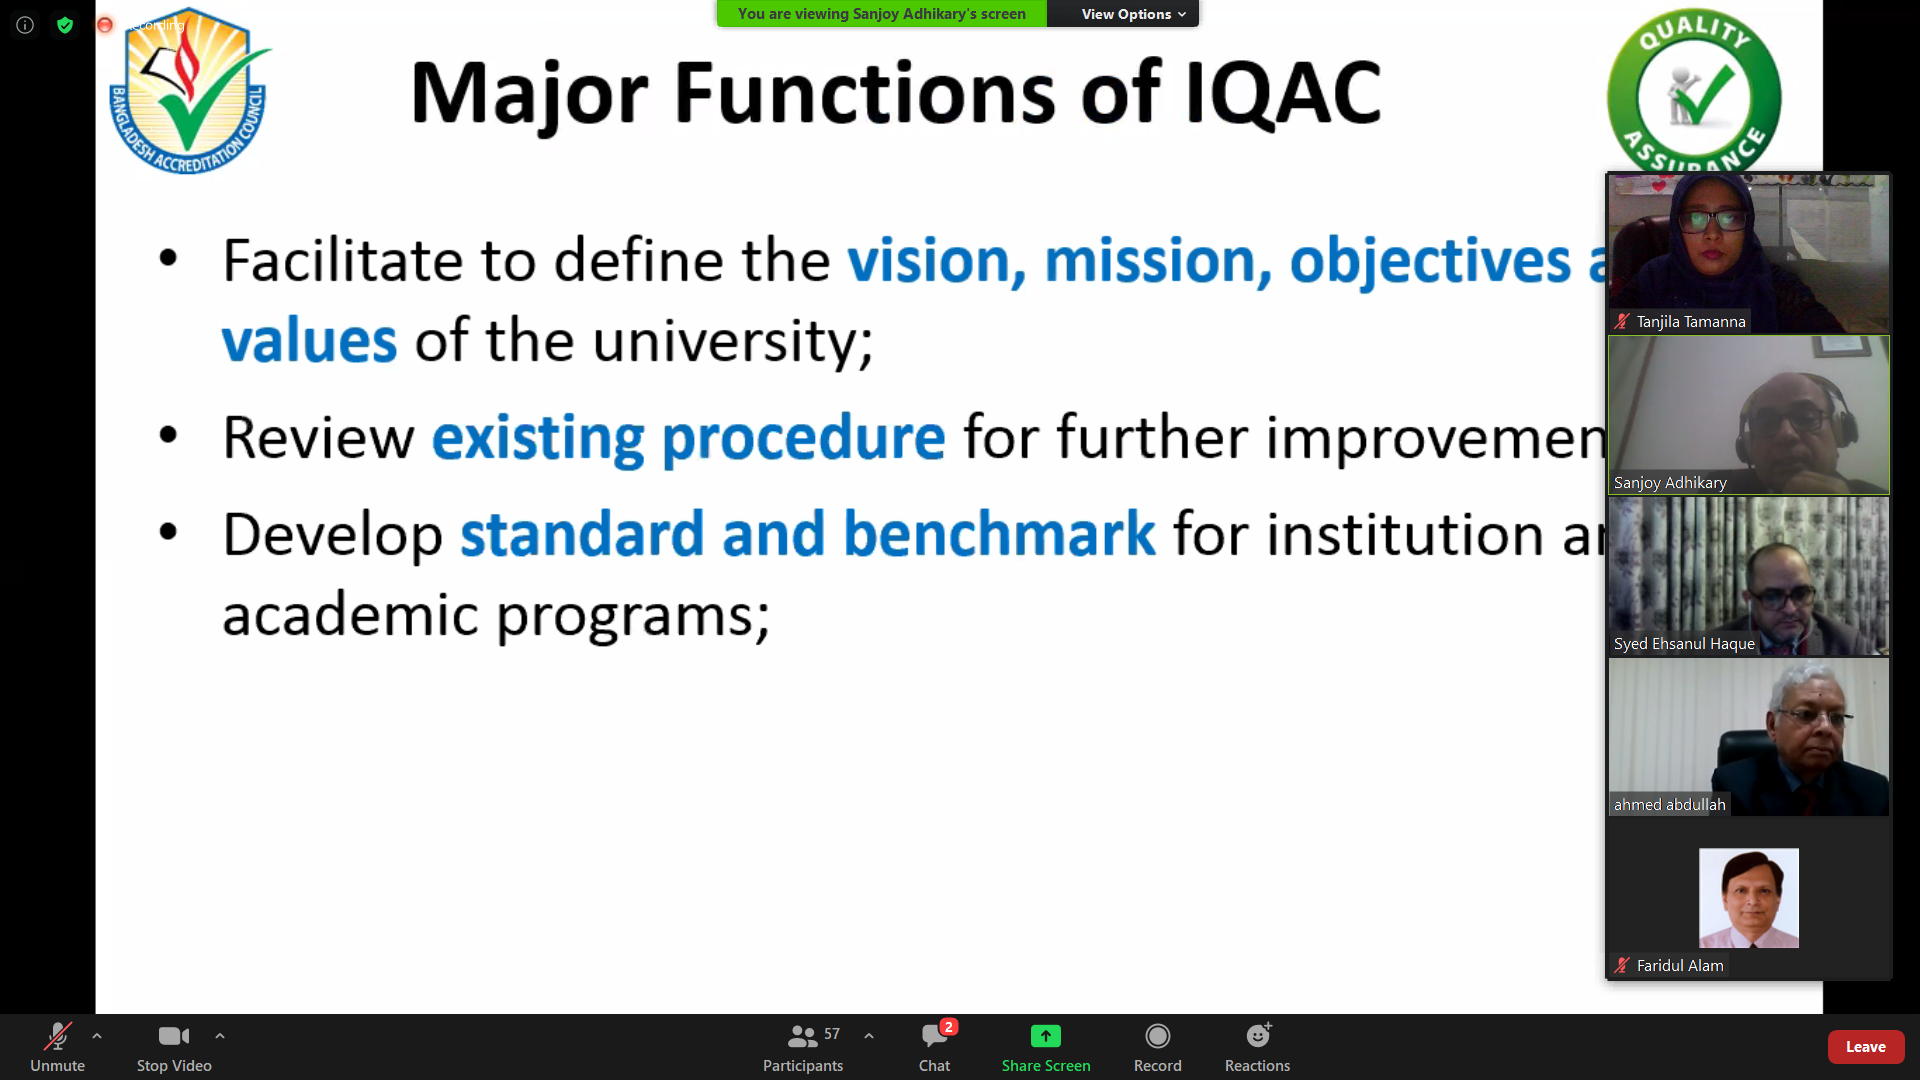 IQAC-Its Significance for QA and Accreditation in HEI